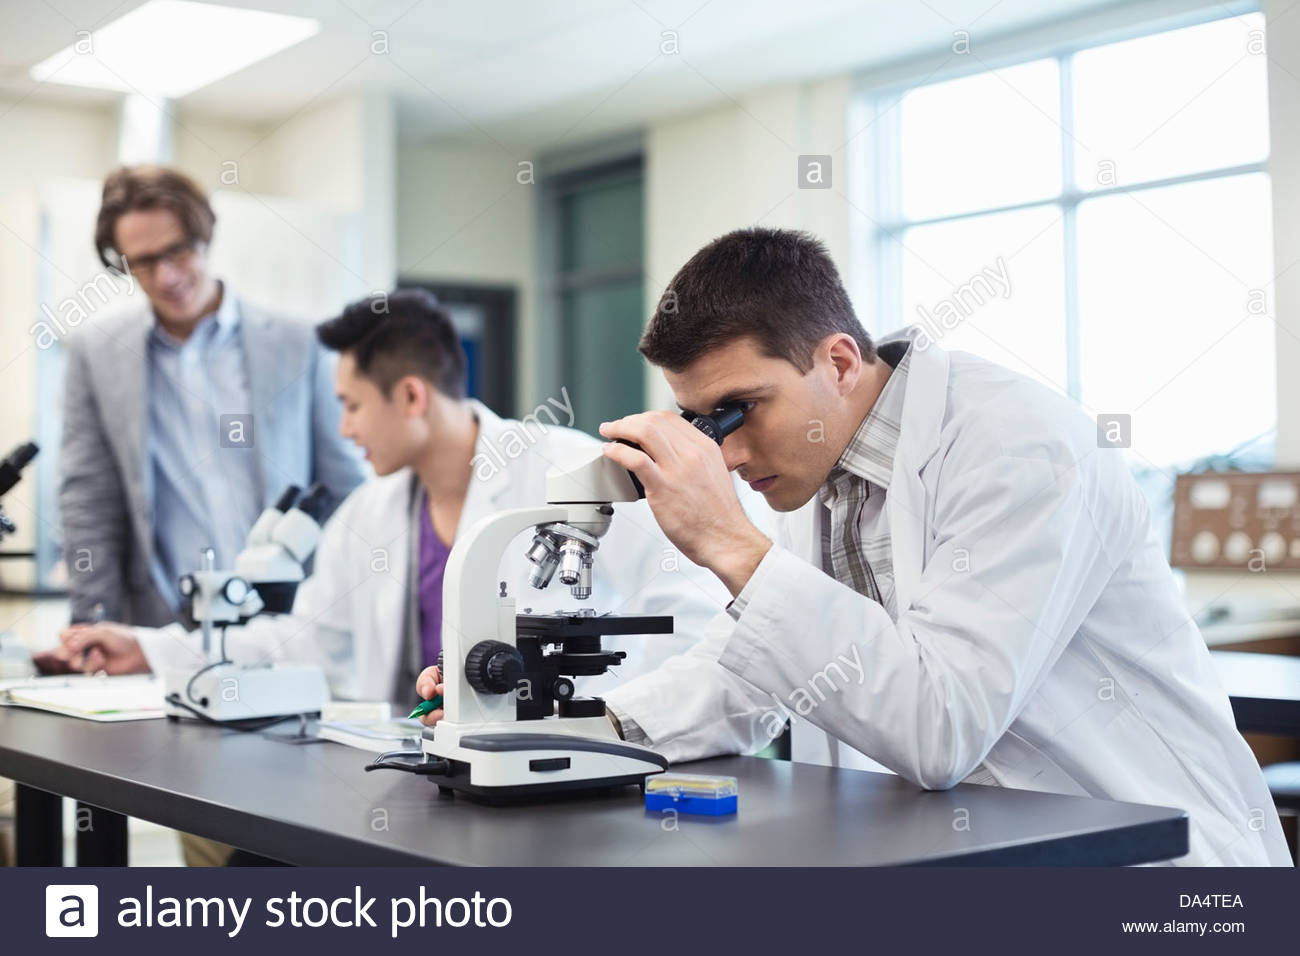 Male student using microscope in college science lab - Stock Image